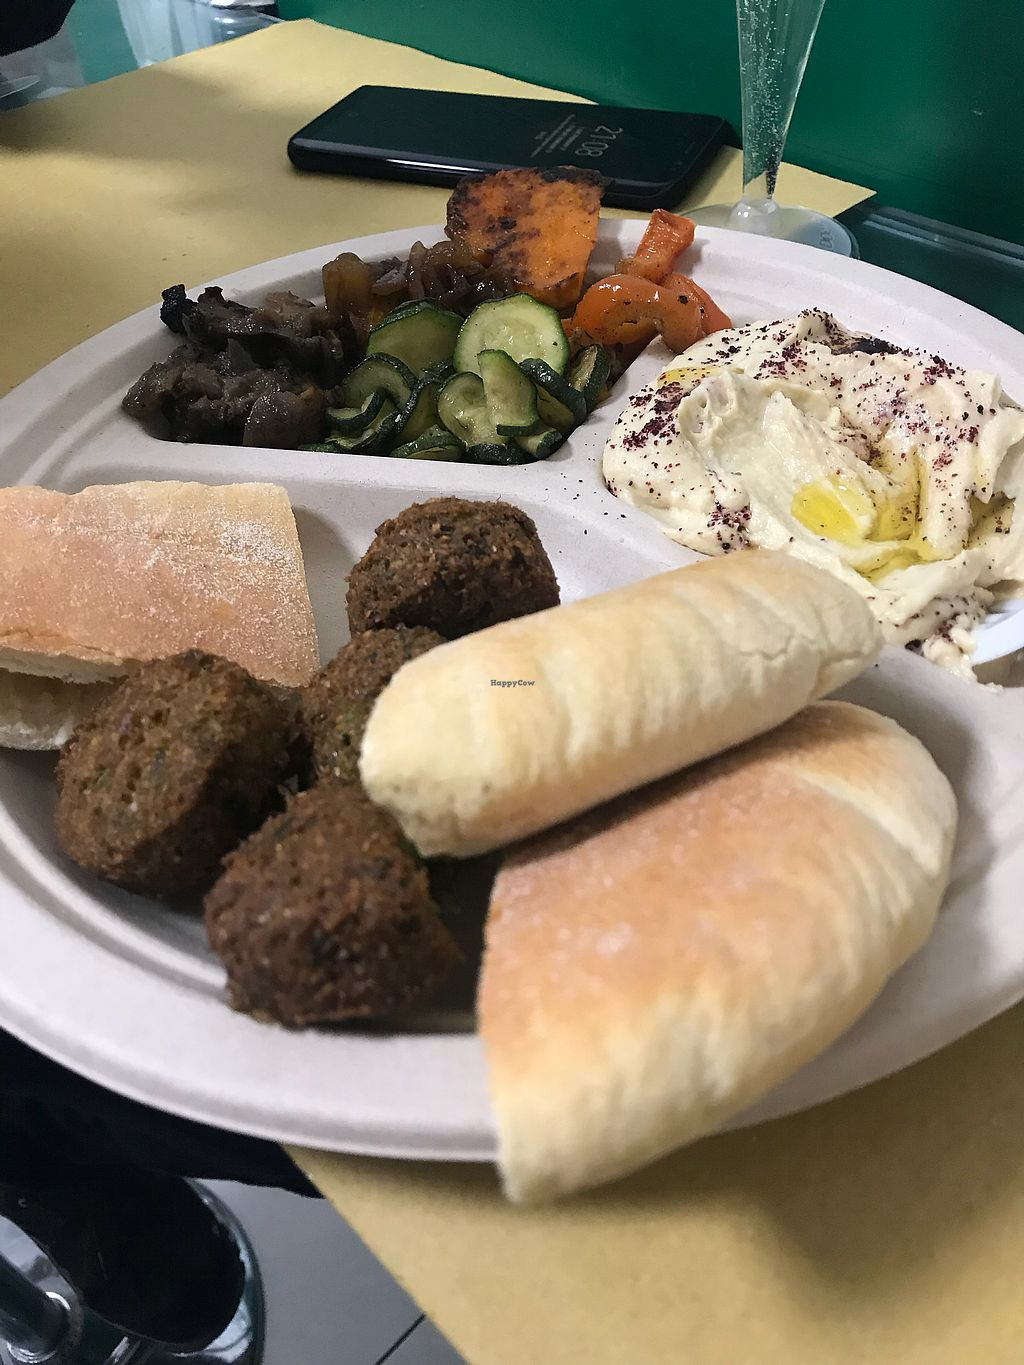 """Photo of Punto Veg  by <a href=""""/members/profile/joanarita"""">joanarita</a> <br/>Mixed plate with hummus, falafel and grilled vegetables  <br/> February 18, 2018  - <a href='/contact/abuse/image/103123/360939'>Report</a>"""